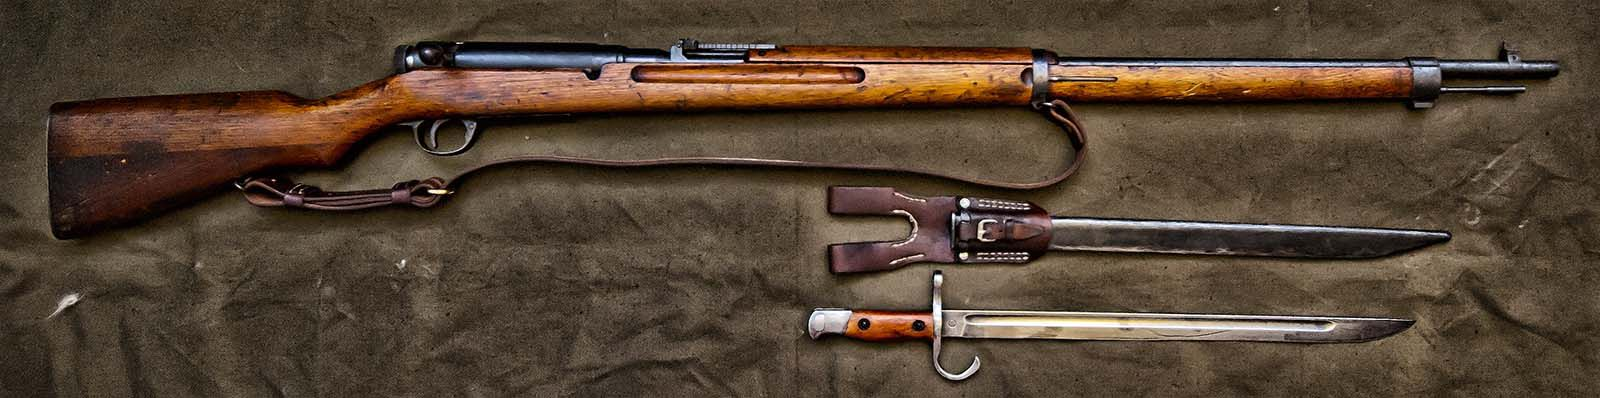 Meiji (Arisaka) rifle type 38 early series 1917-1918 year of production w. bayonet, scabbard & frog.